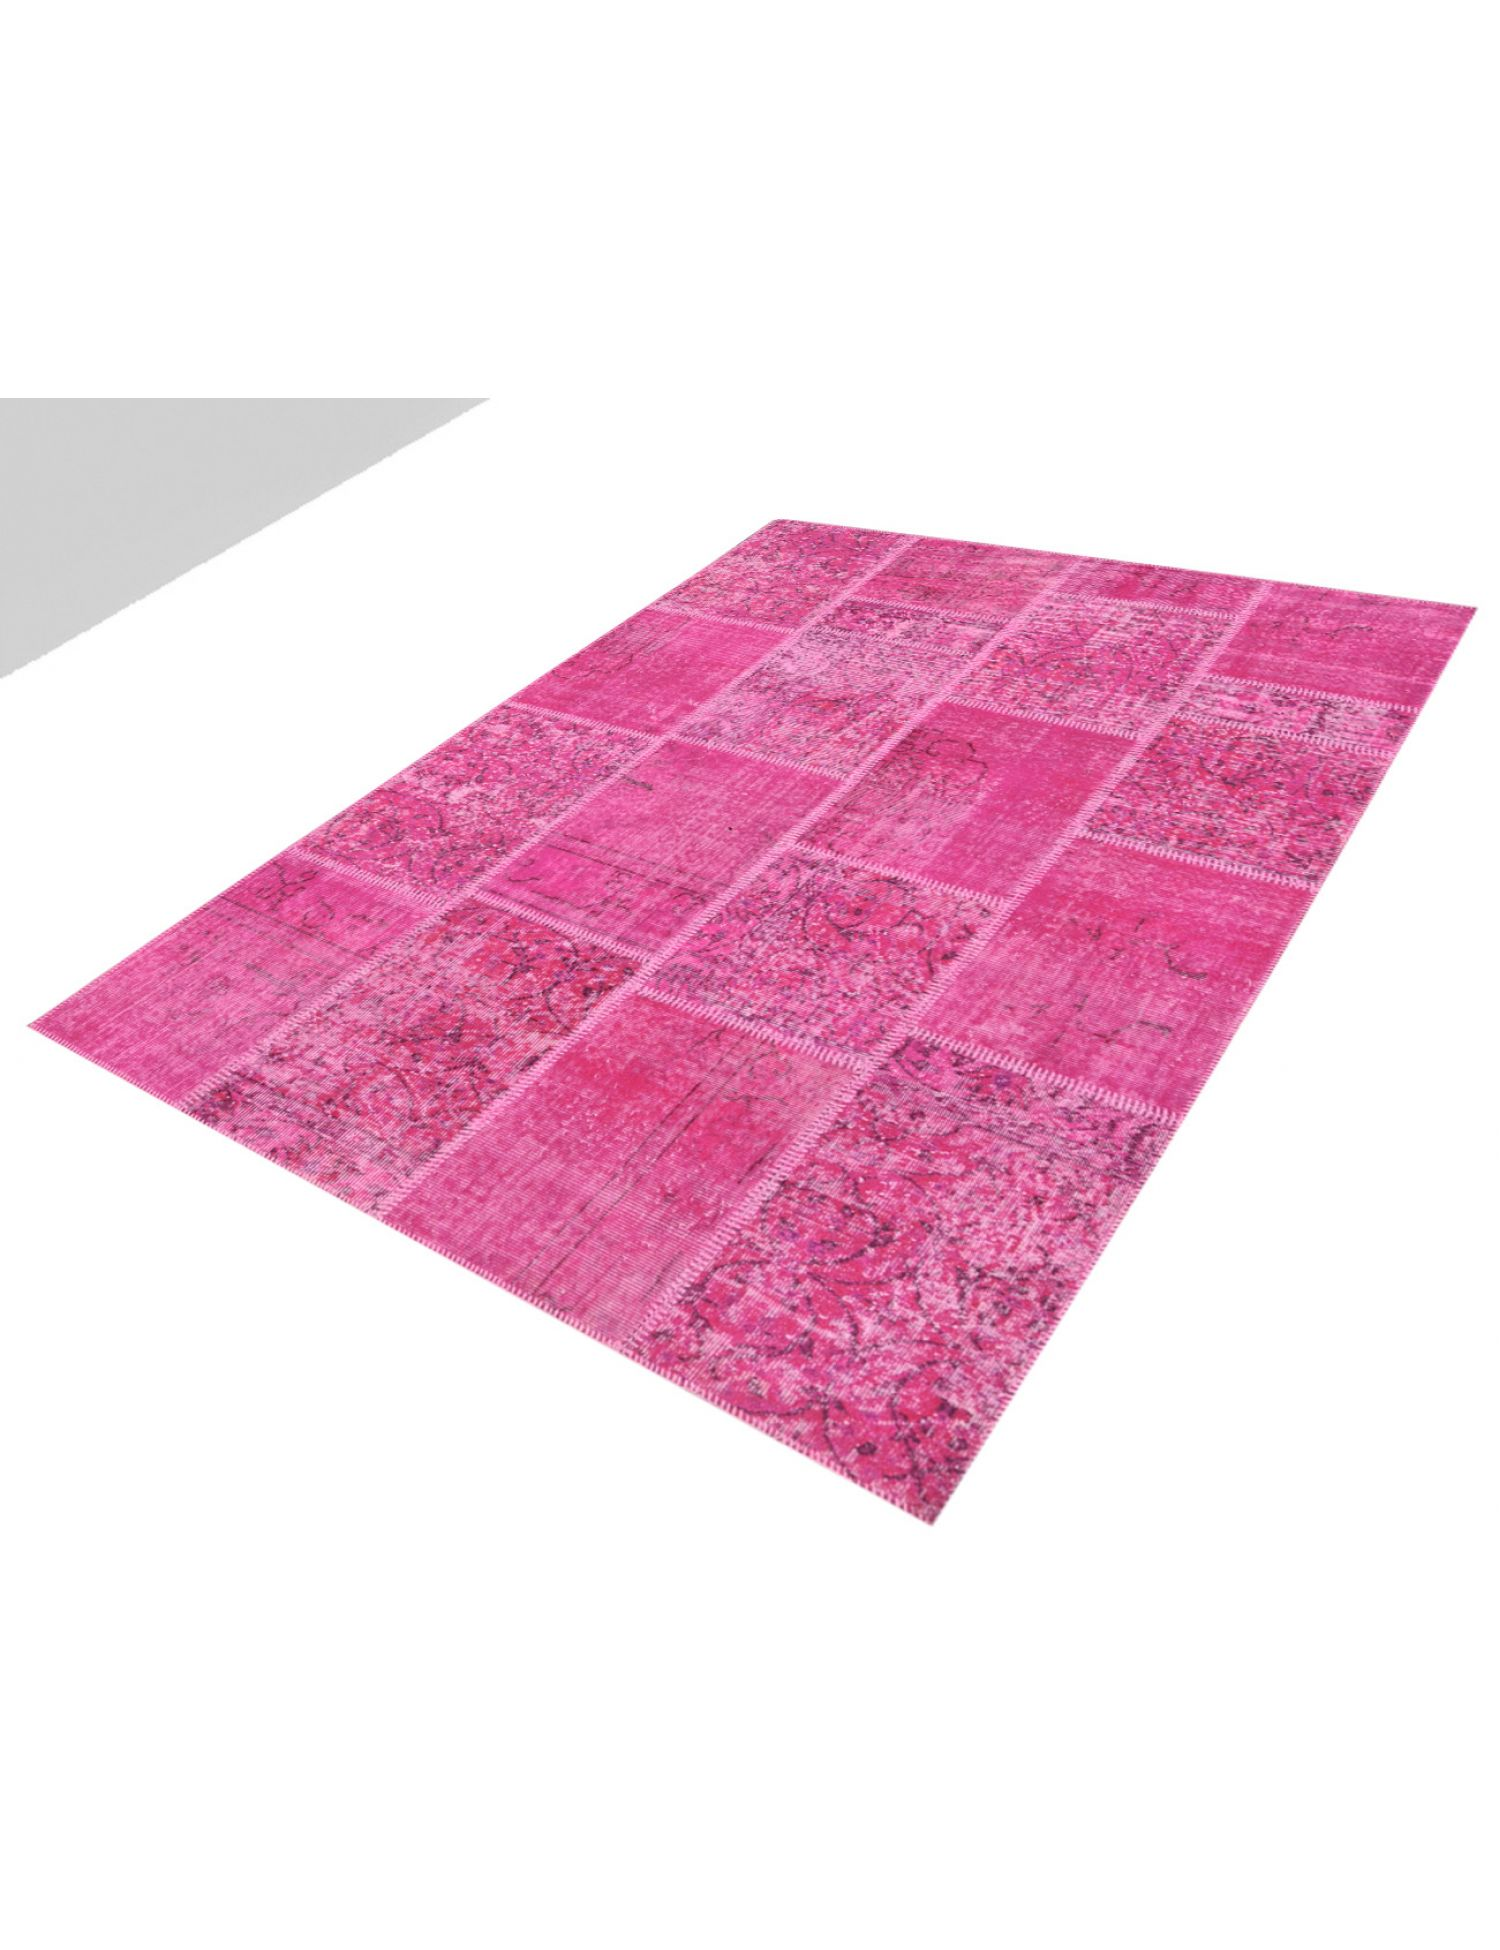 Patchwork Carpet  purple <br/>240 x 170 cm